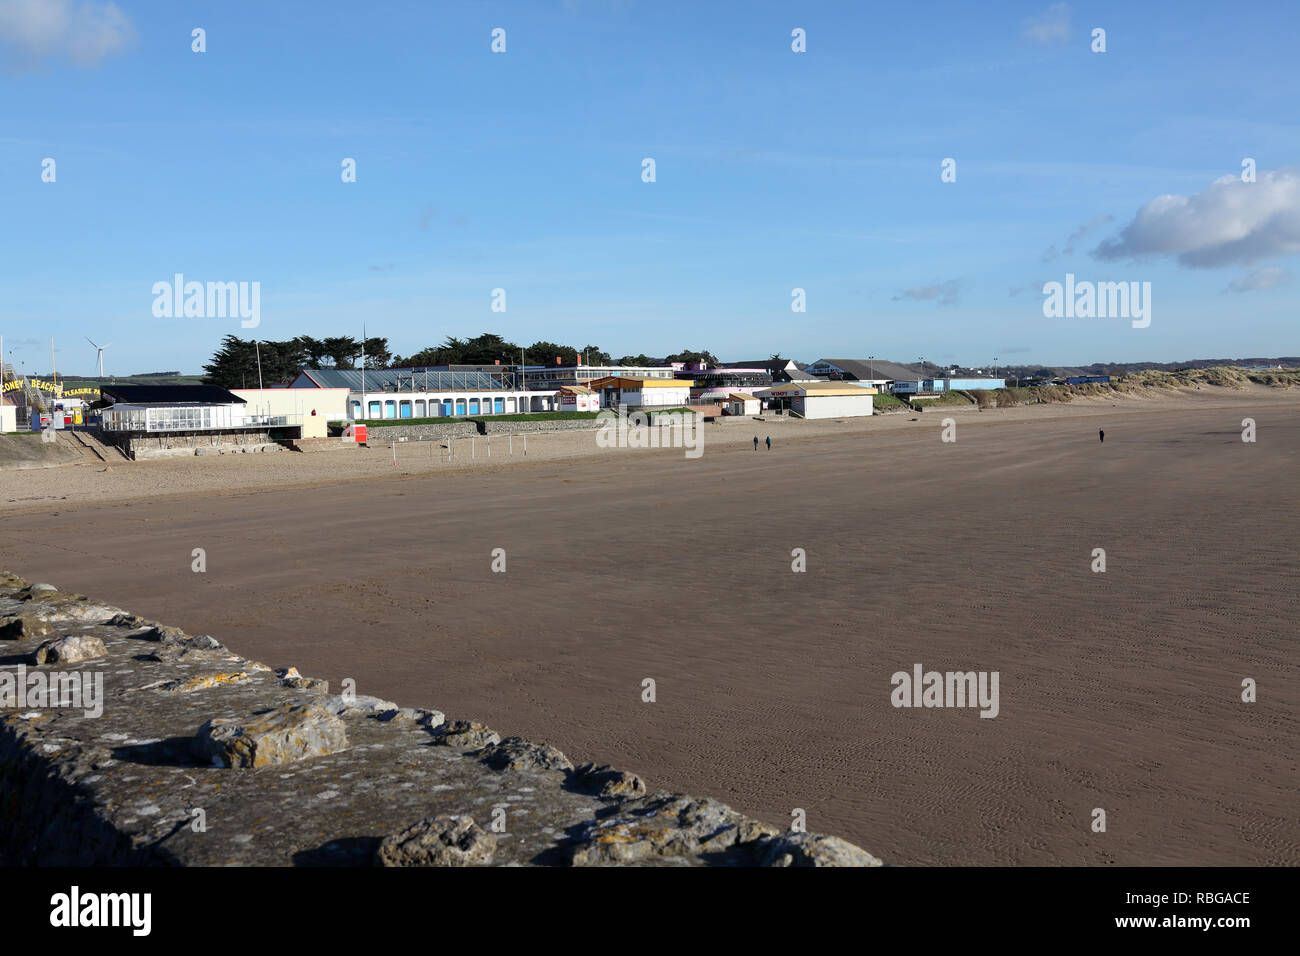 Sand Bay at Porthcawl on a sunny winters day with everyone out for a walk along the promenade beside the seaside in this popular seaside town. - Stock Image